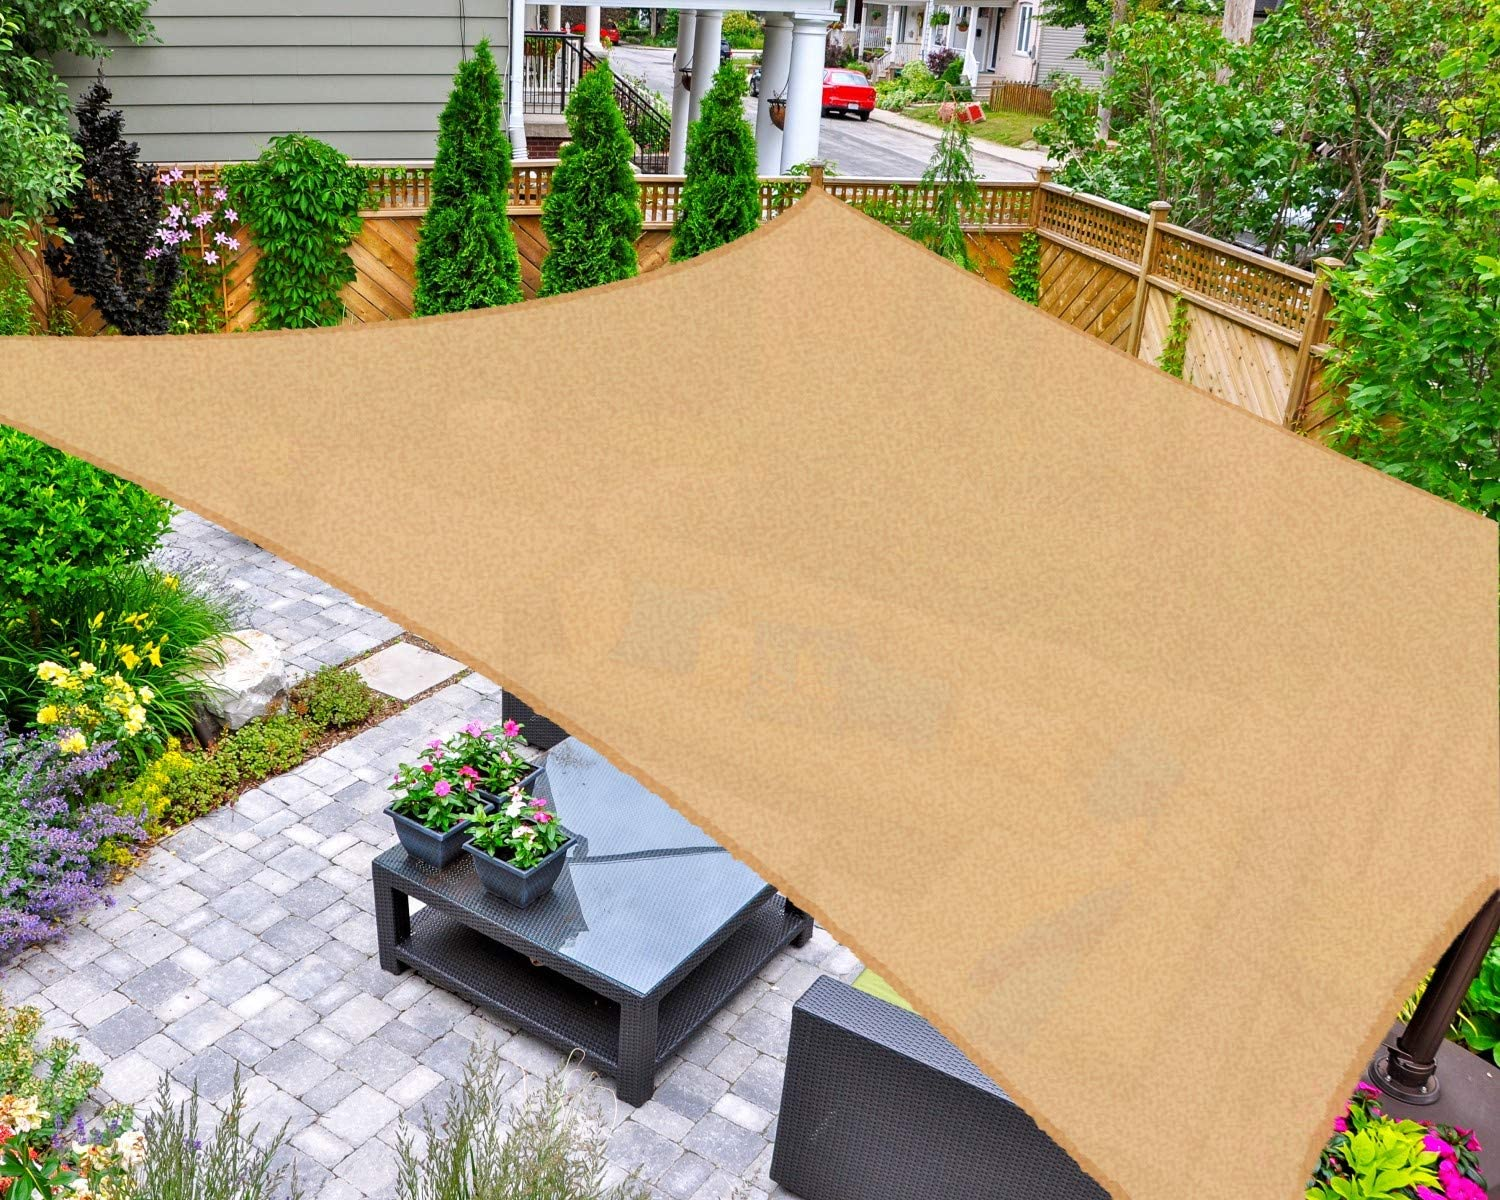 AsterOutdoor Sun Shade Sail Rectangle 10' x 10' UV Block Canopy for Patio Backyard Lawn Garden Outdoor Activities, Sand